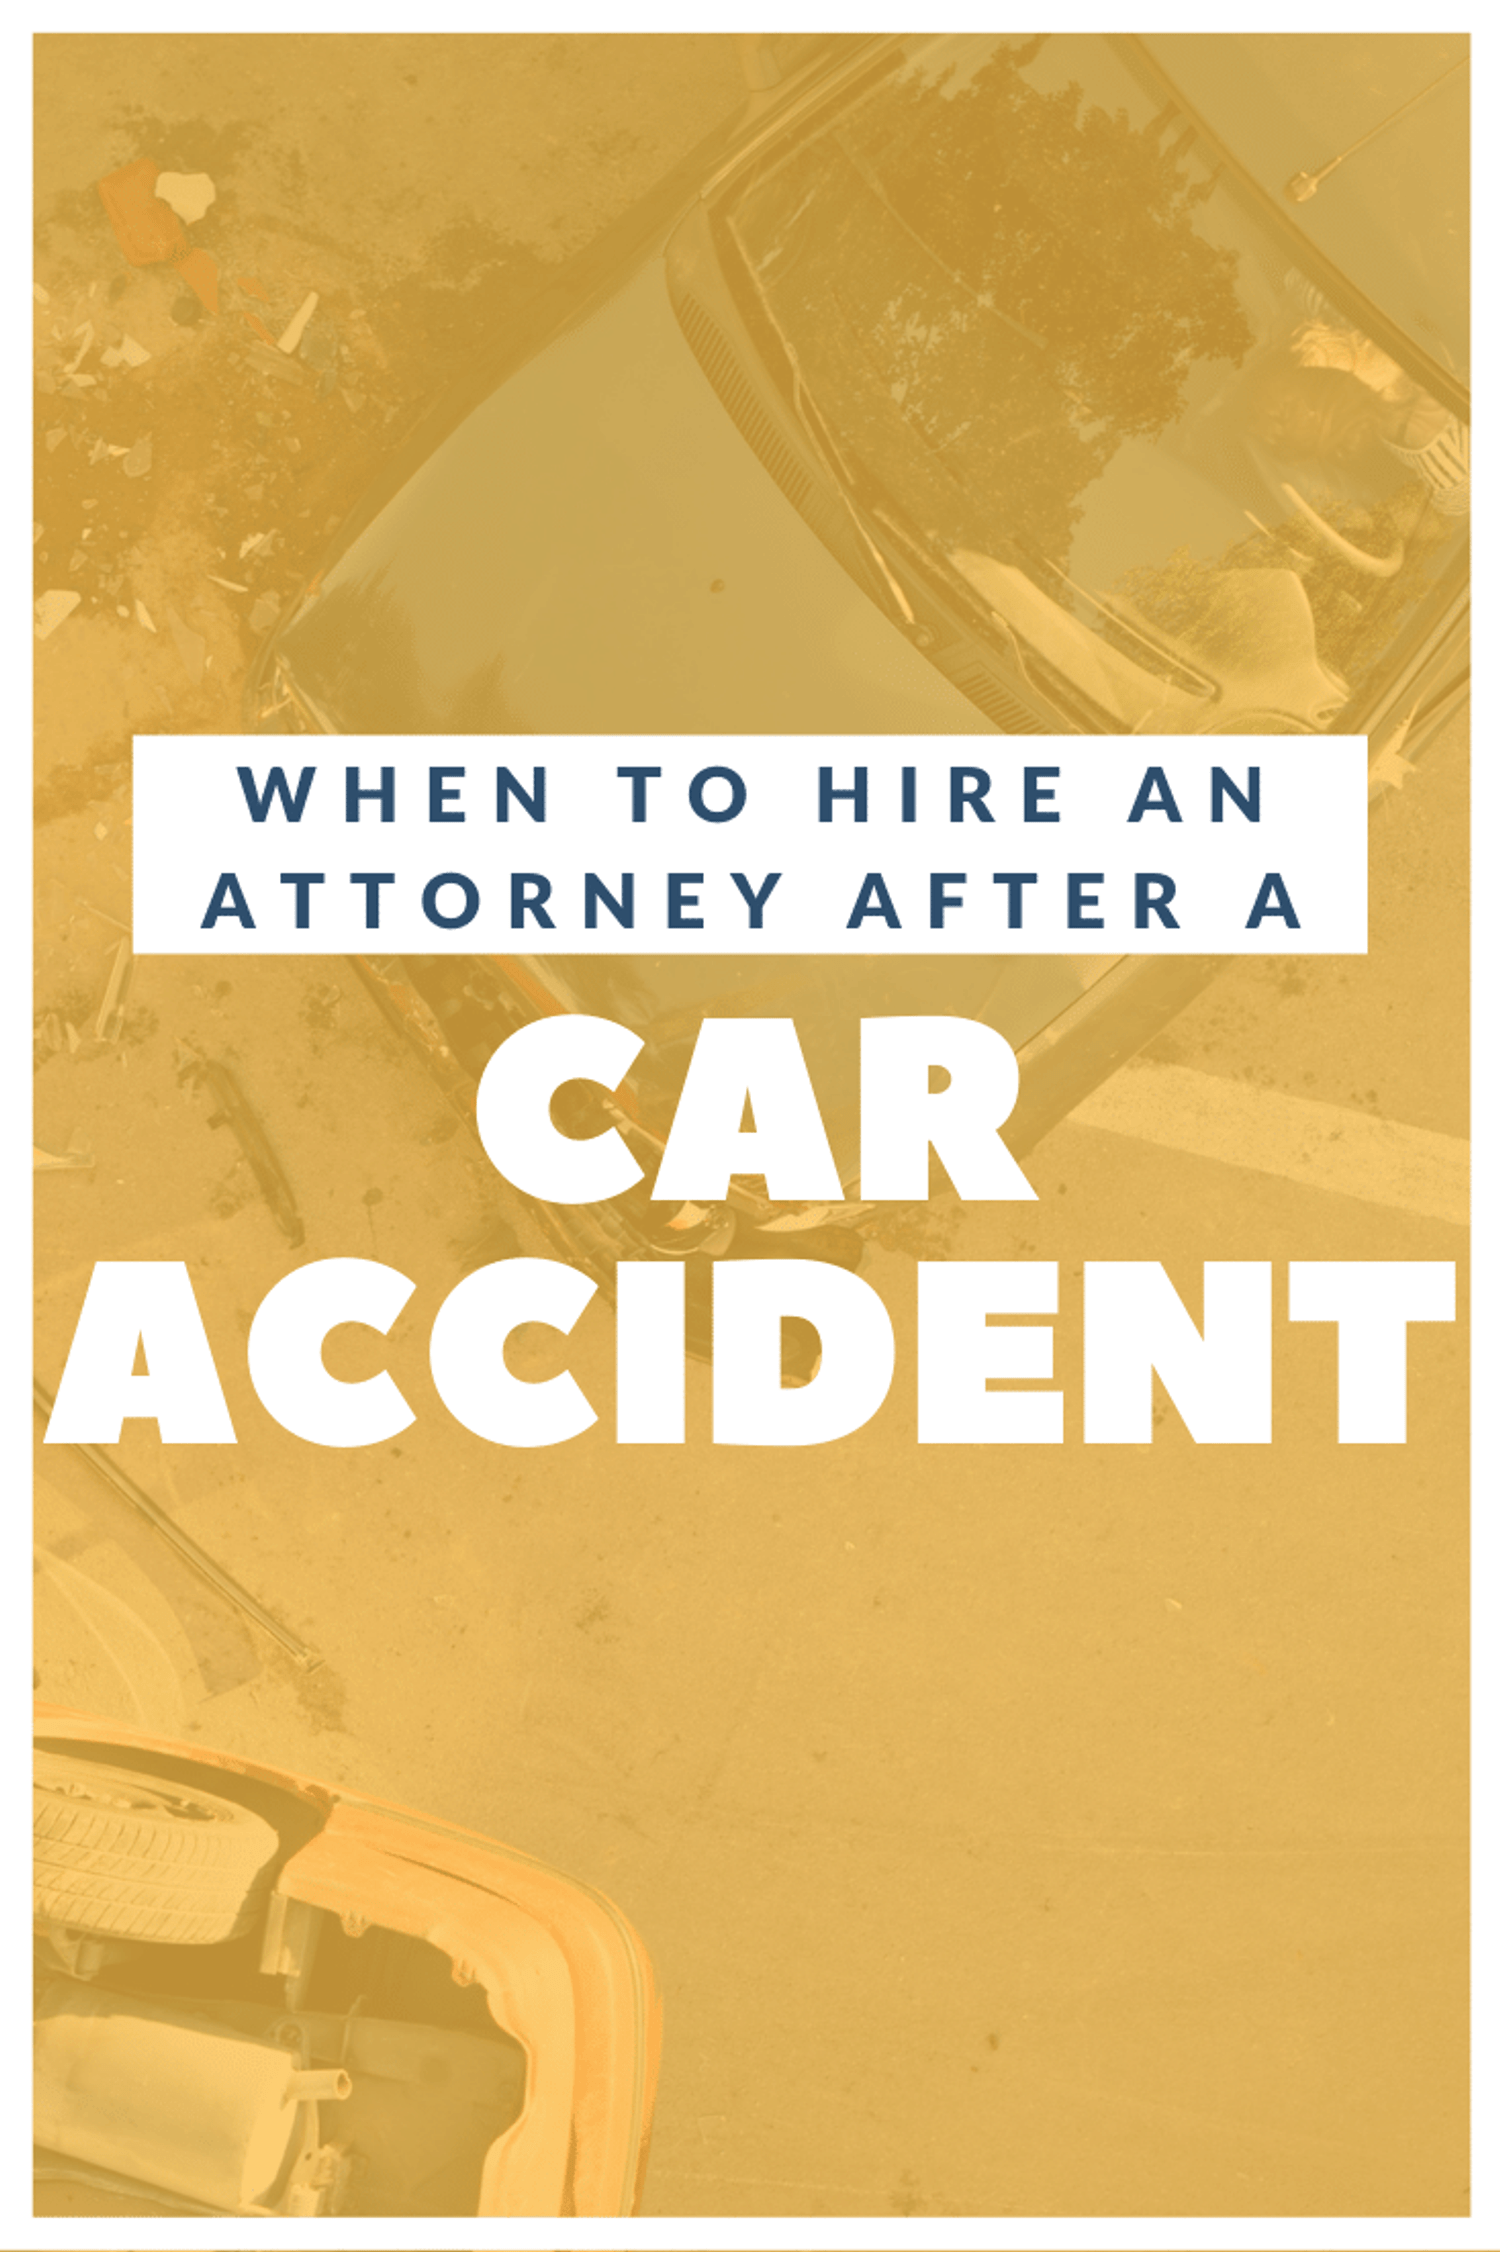 When To Hire An Attorney After A Car Accident Explained